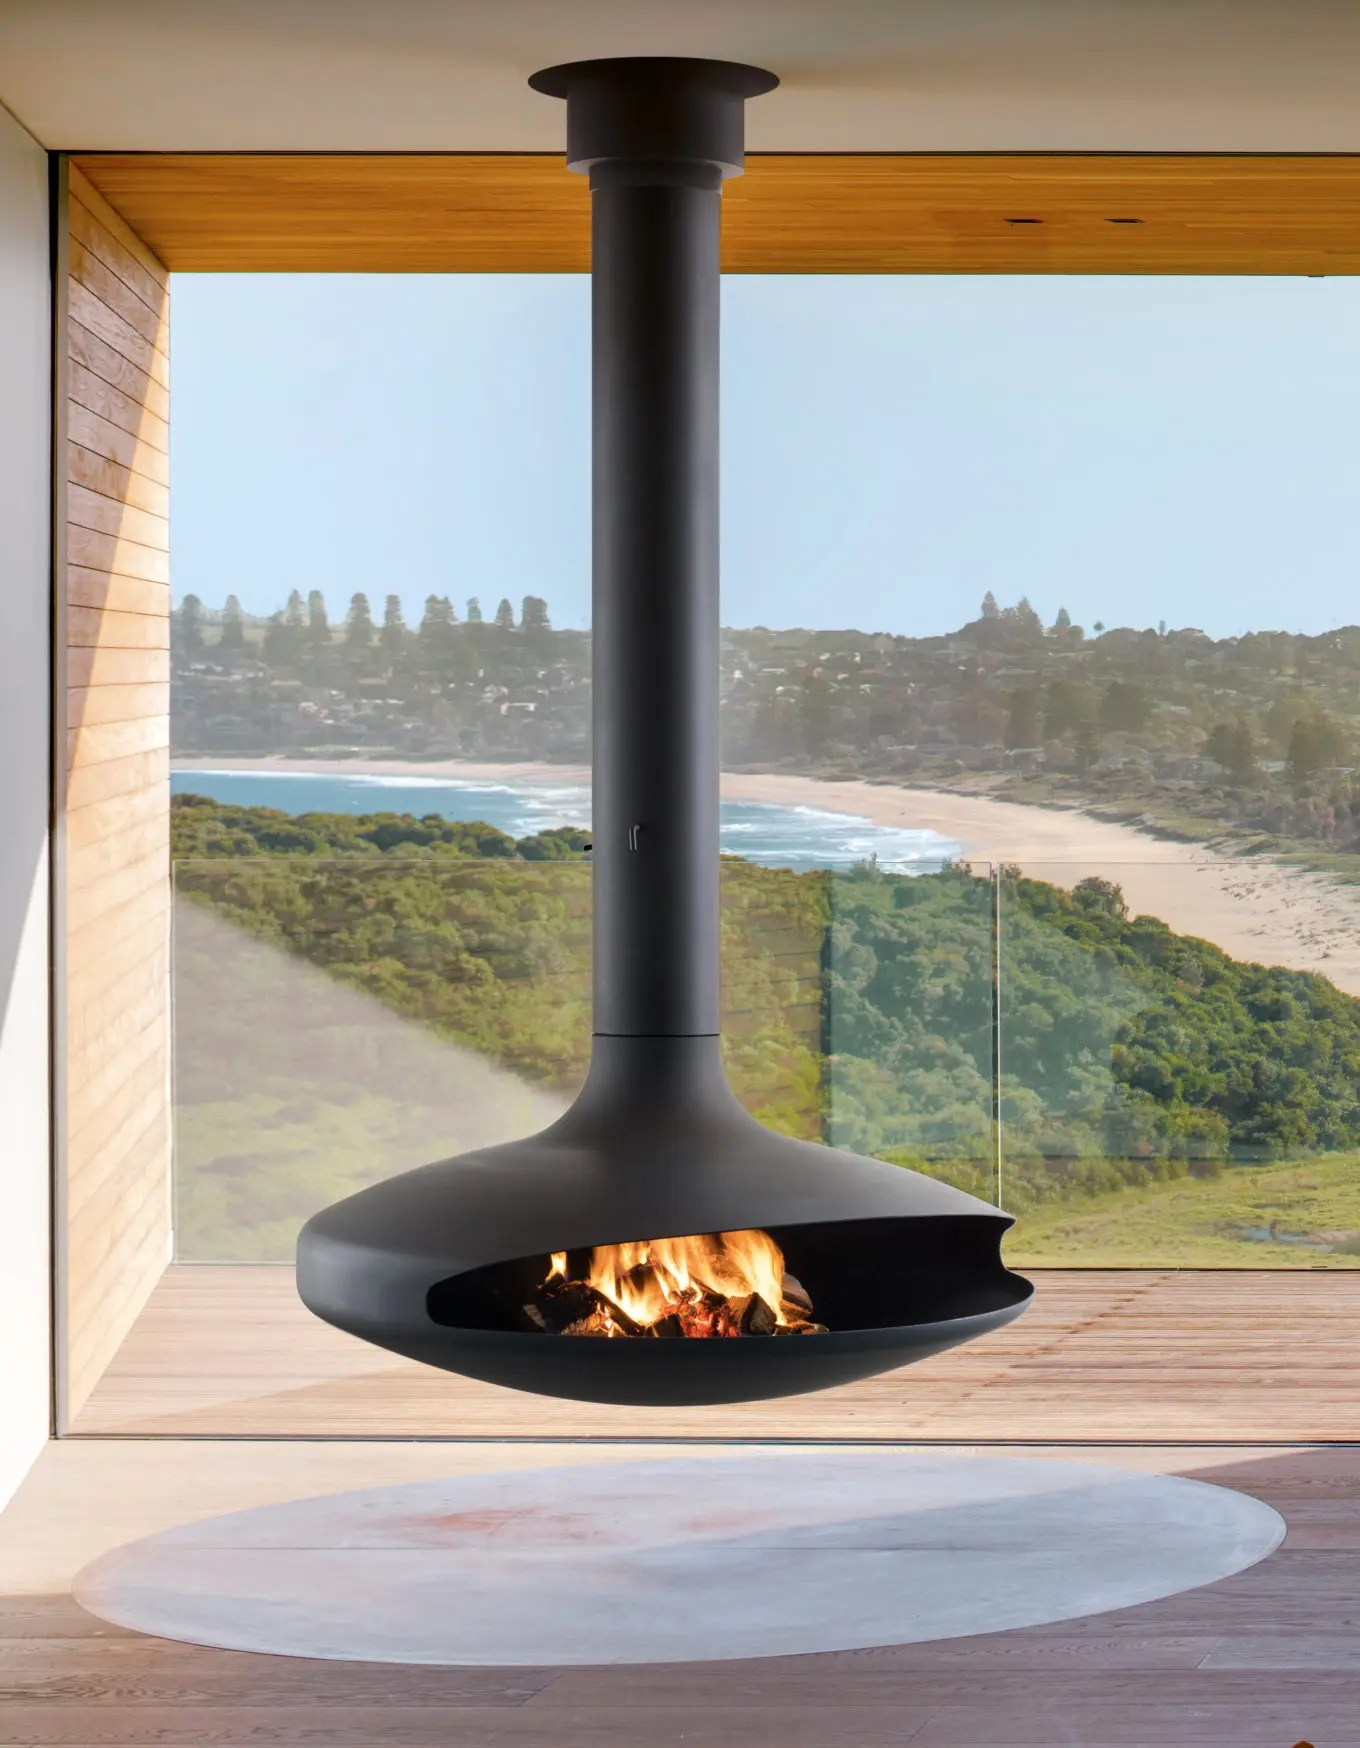 Grenoble Elektrischer Kamin Gyrofocus By Focus Fires Suspended Rotating Fireplace